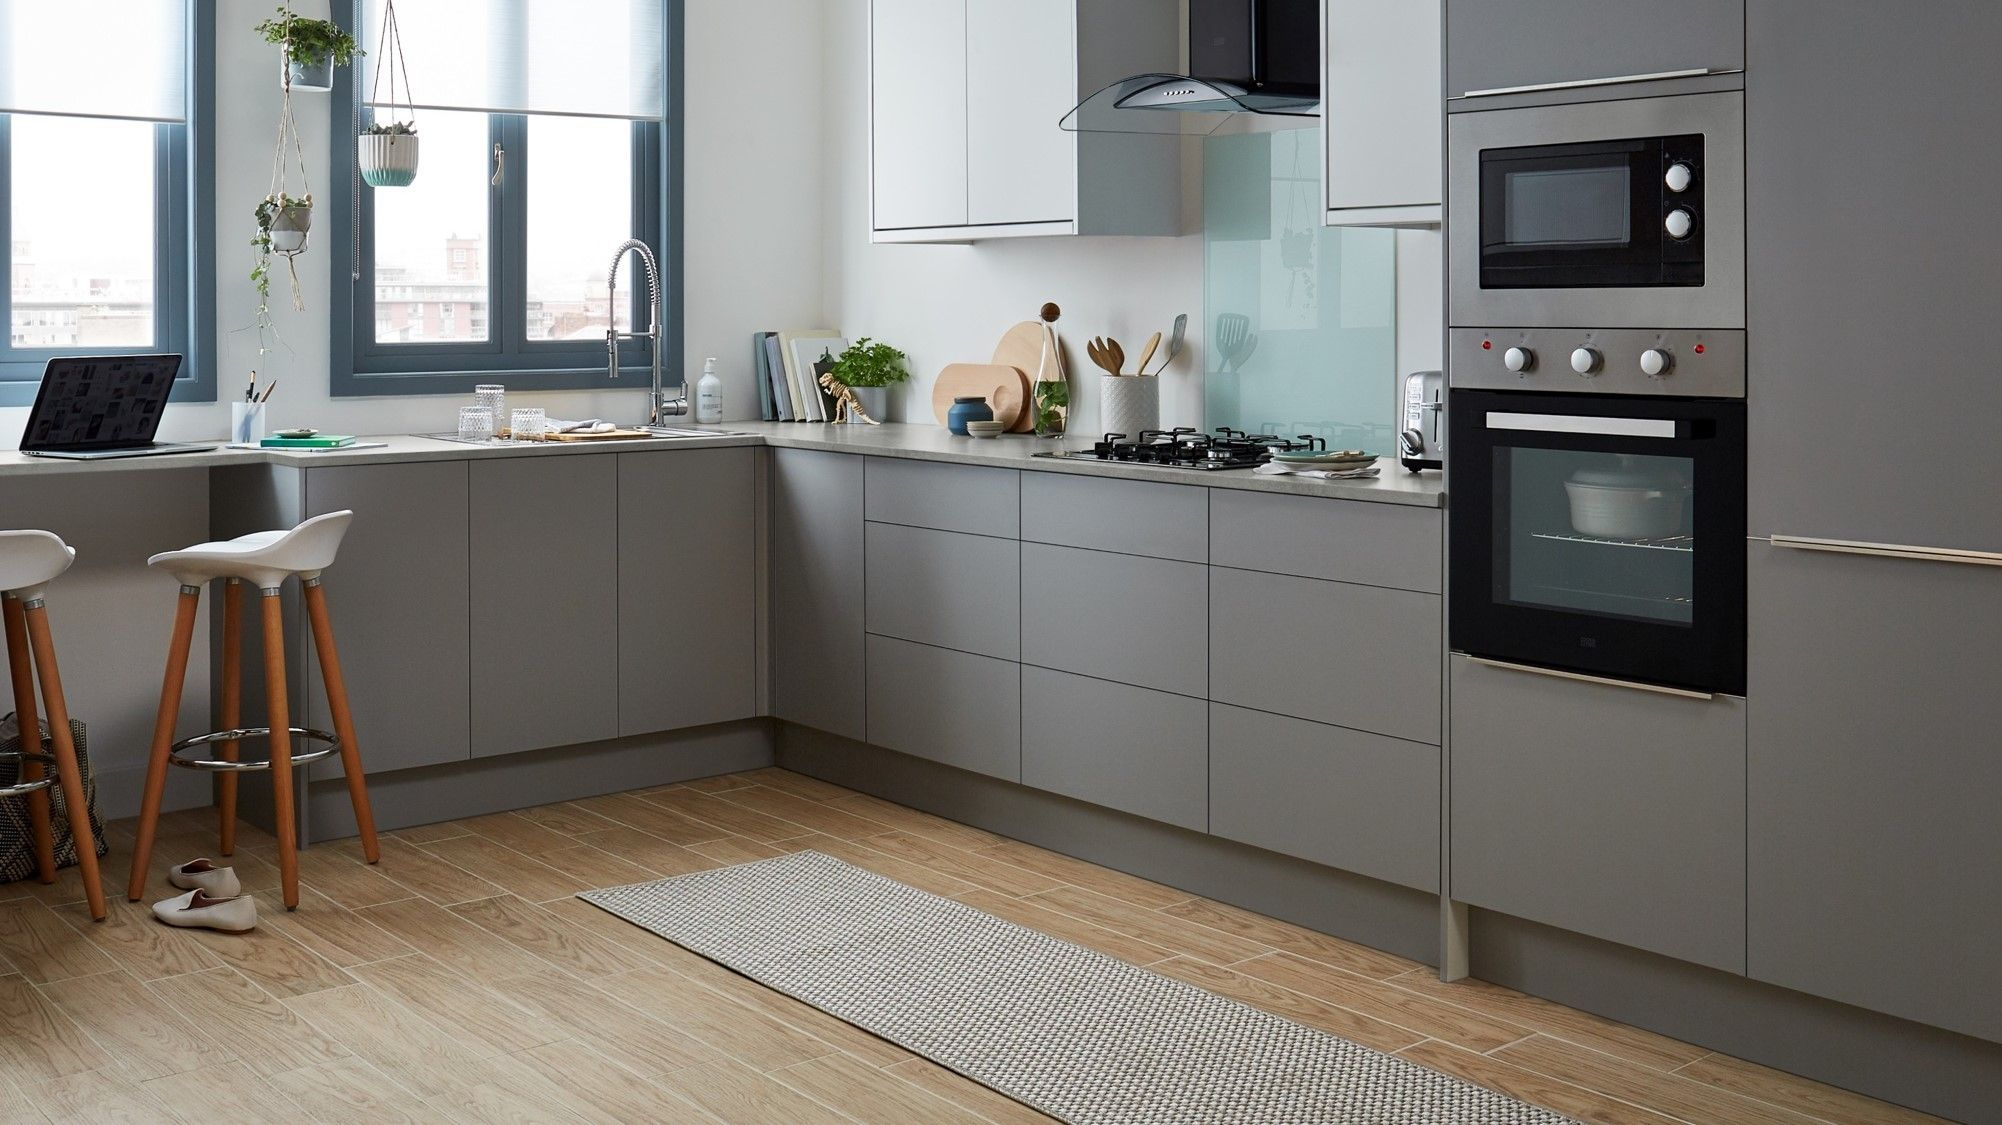 Pin by B&Q Sprucefield Showrooms on GoodHome Kitchens